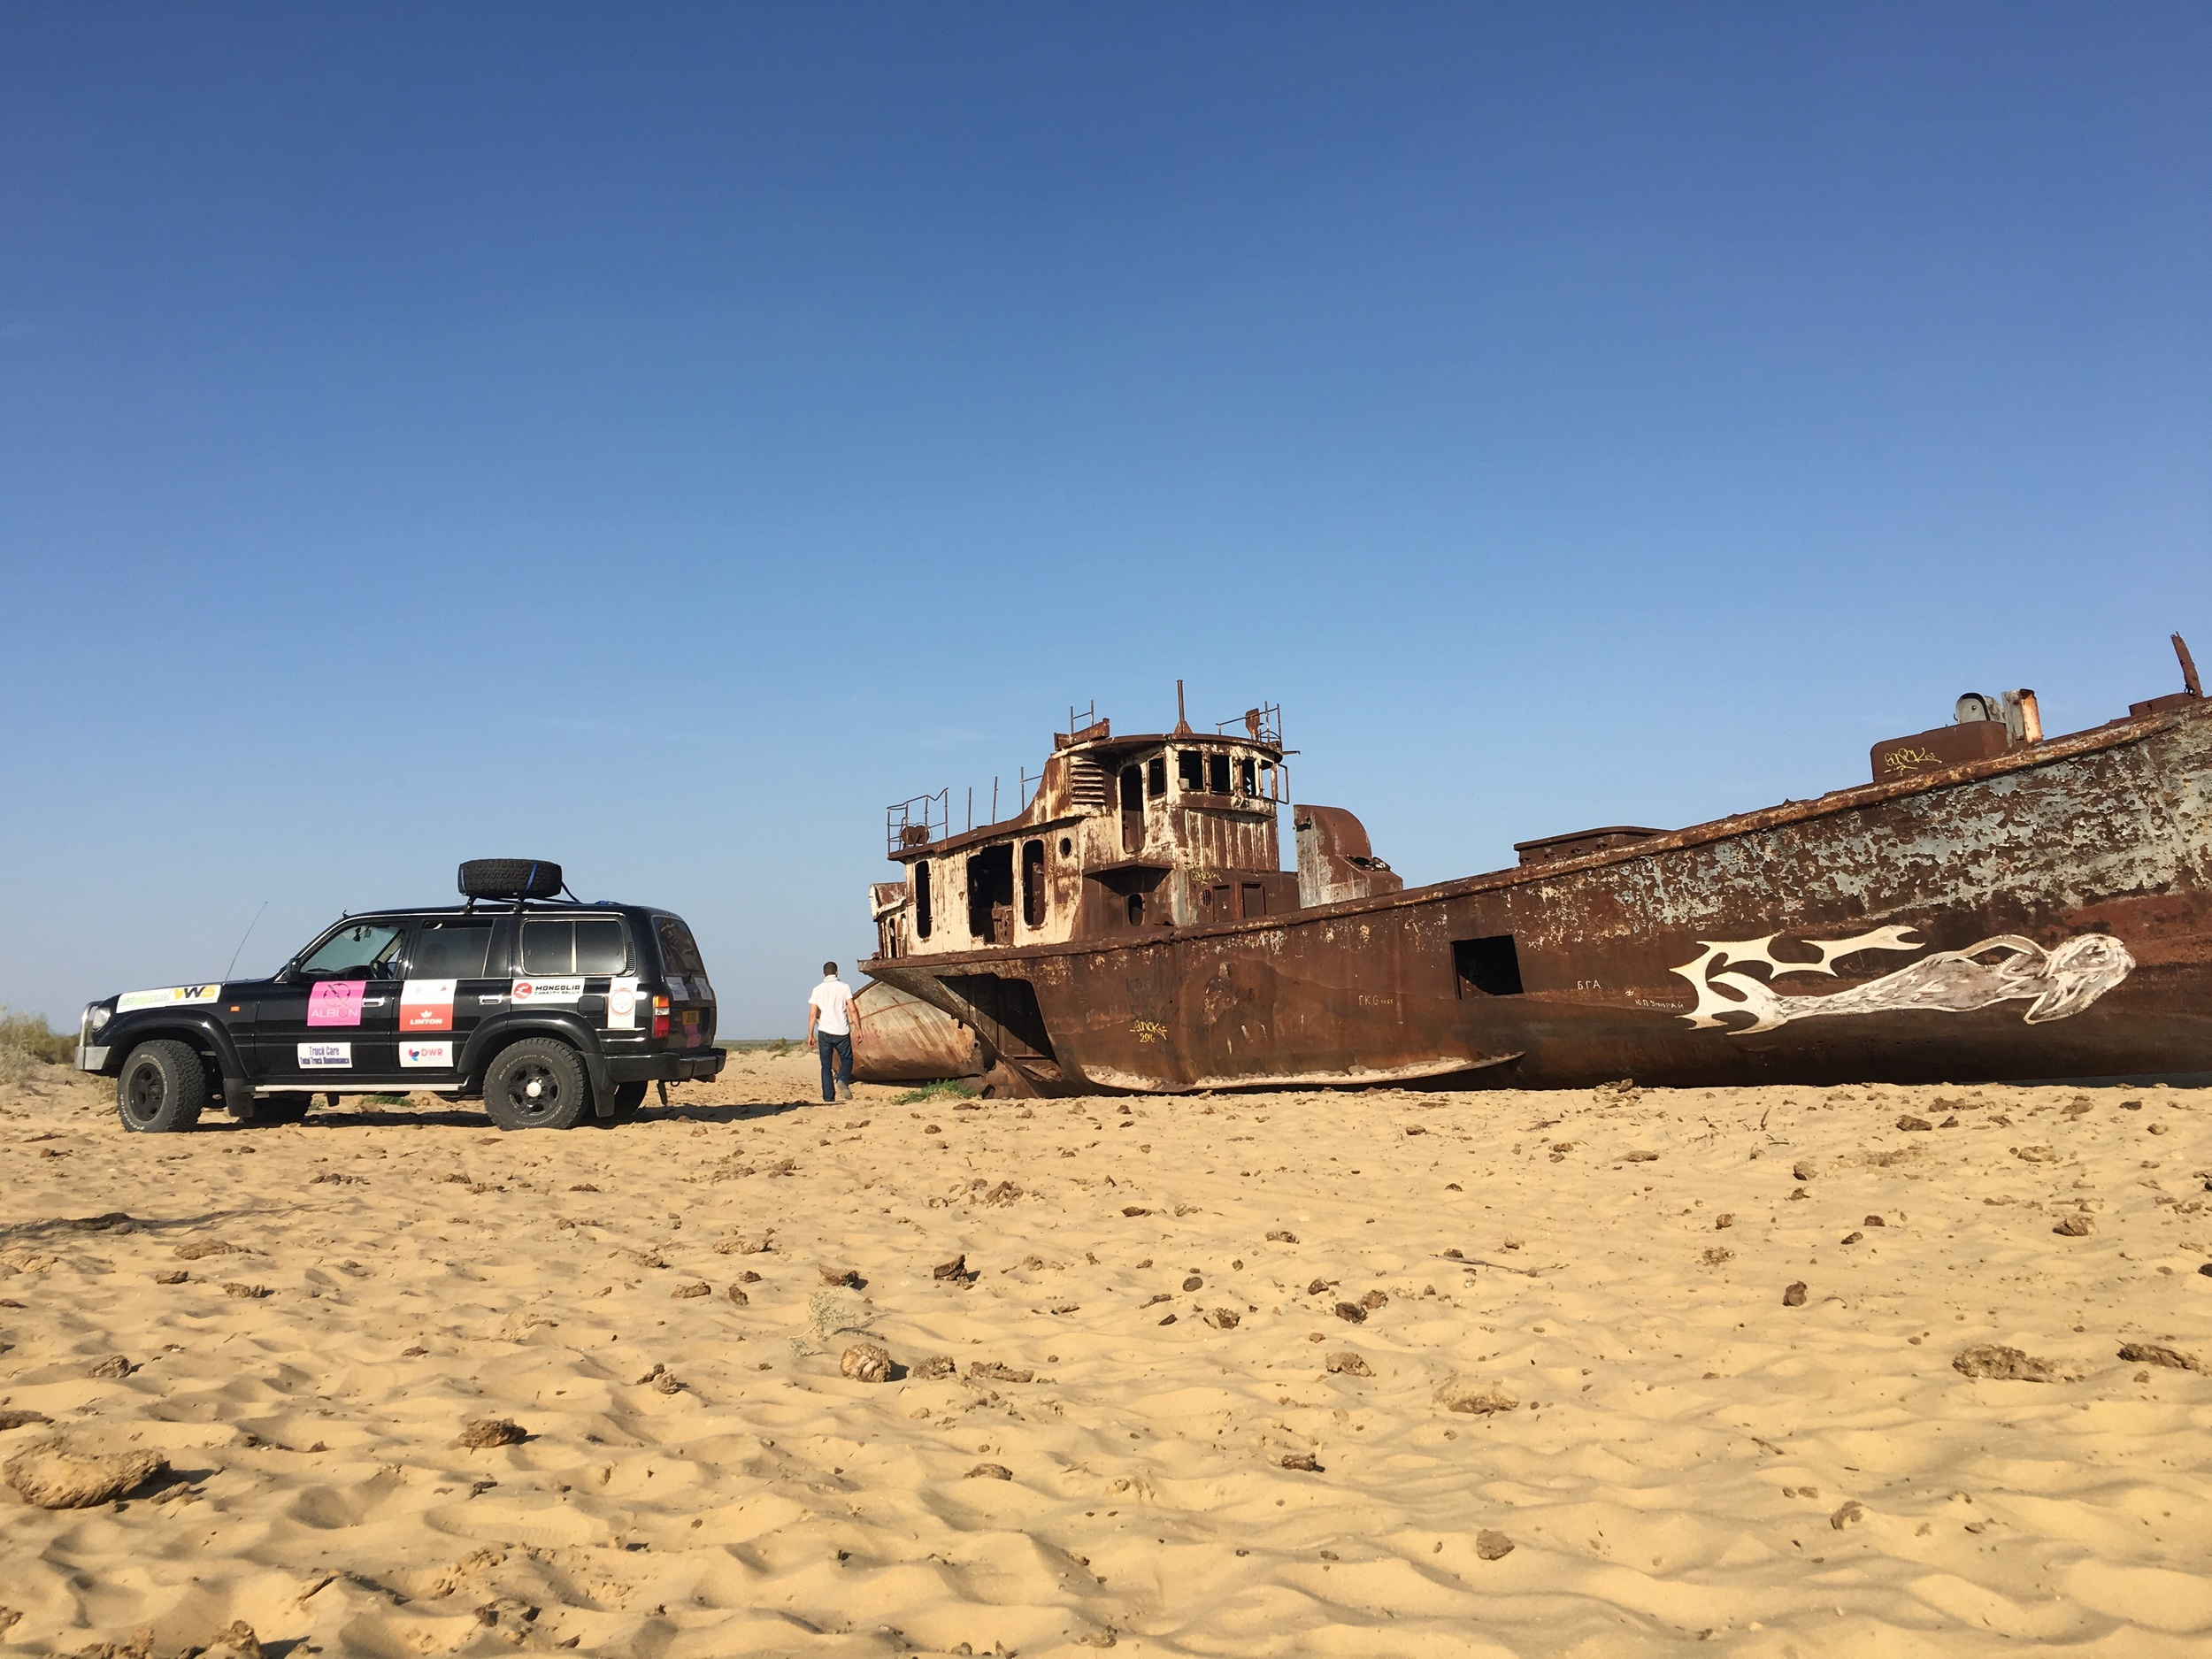 Our car next to one of the abandoned ships.